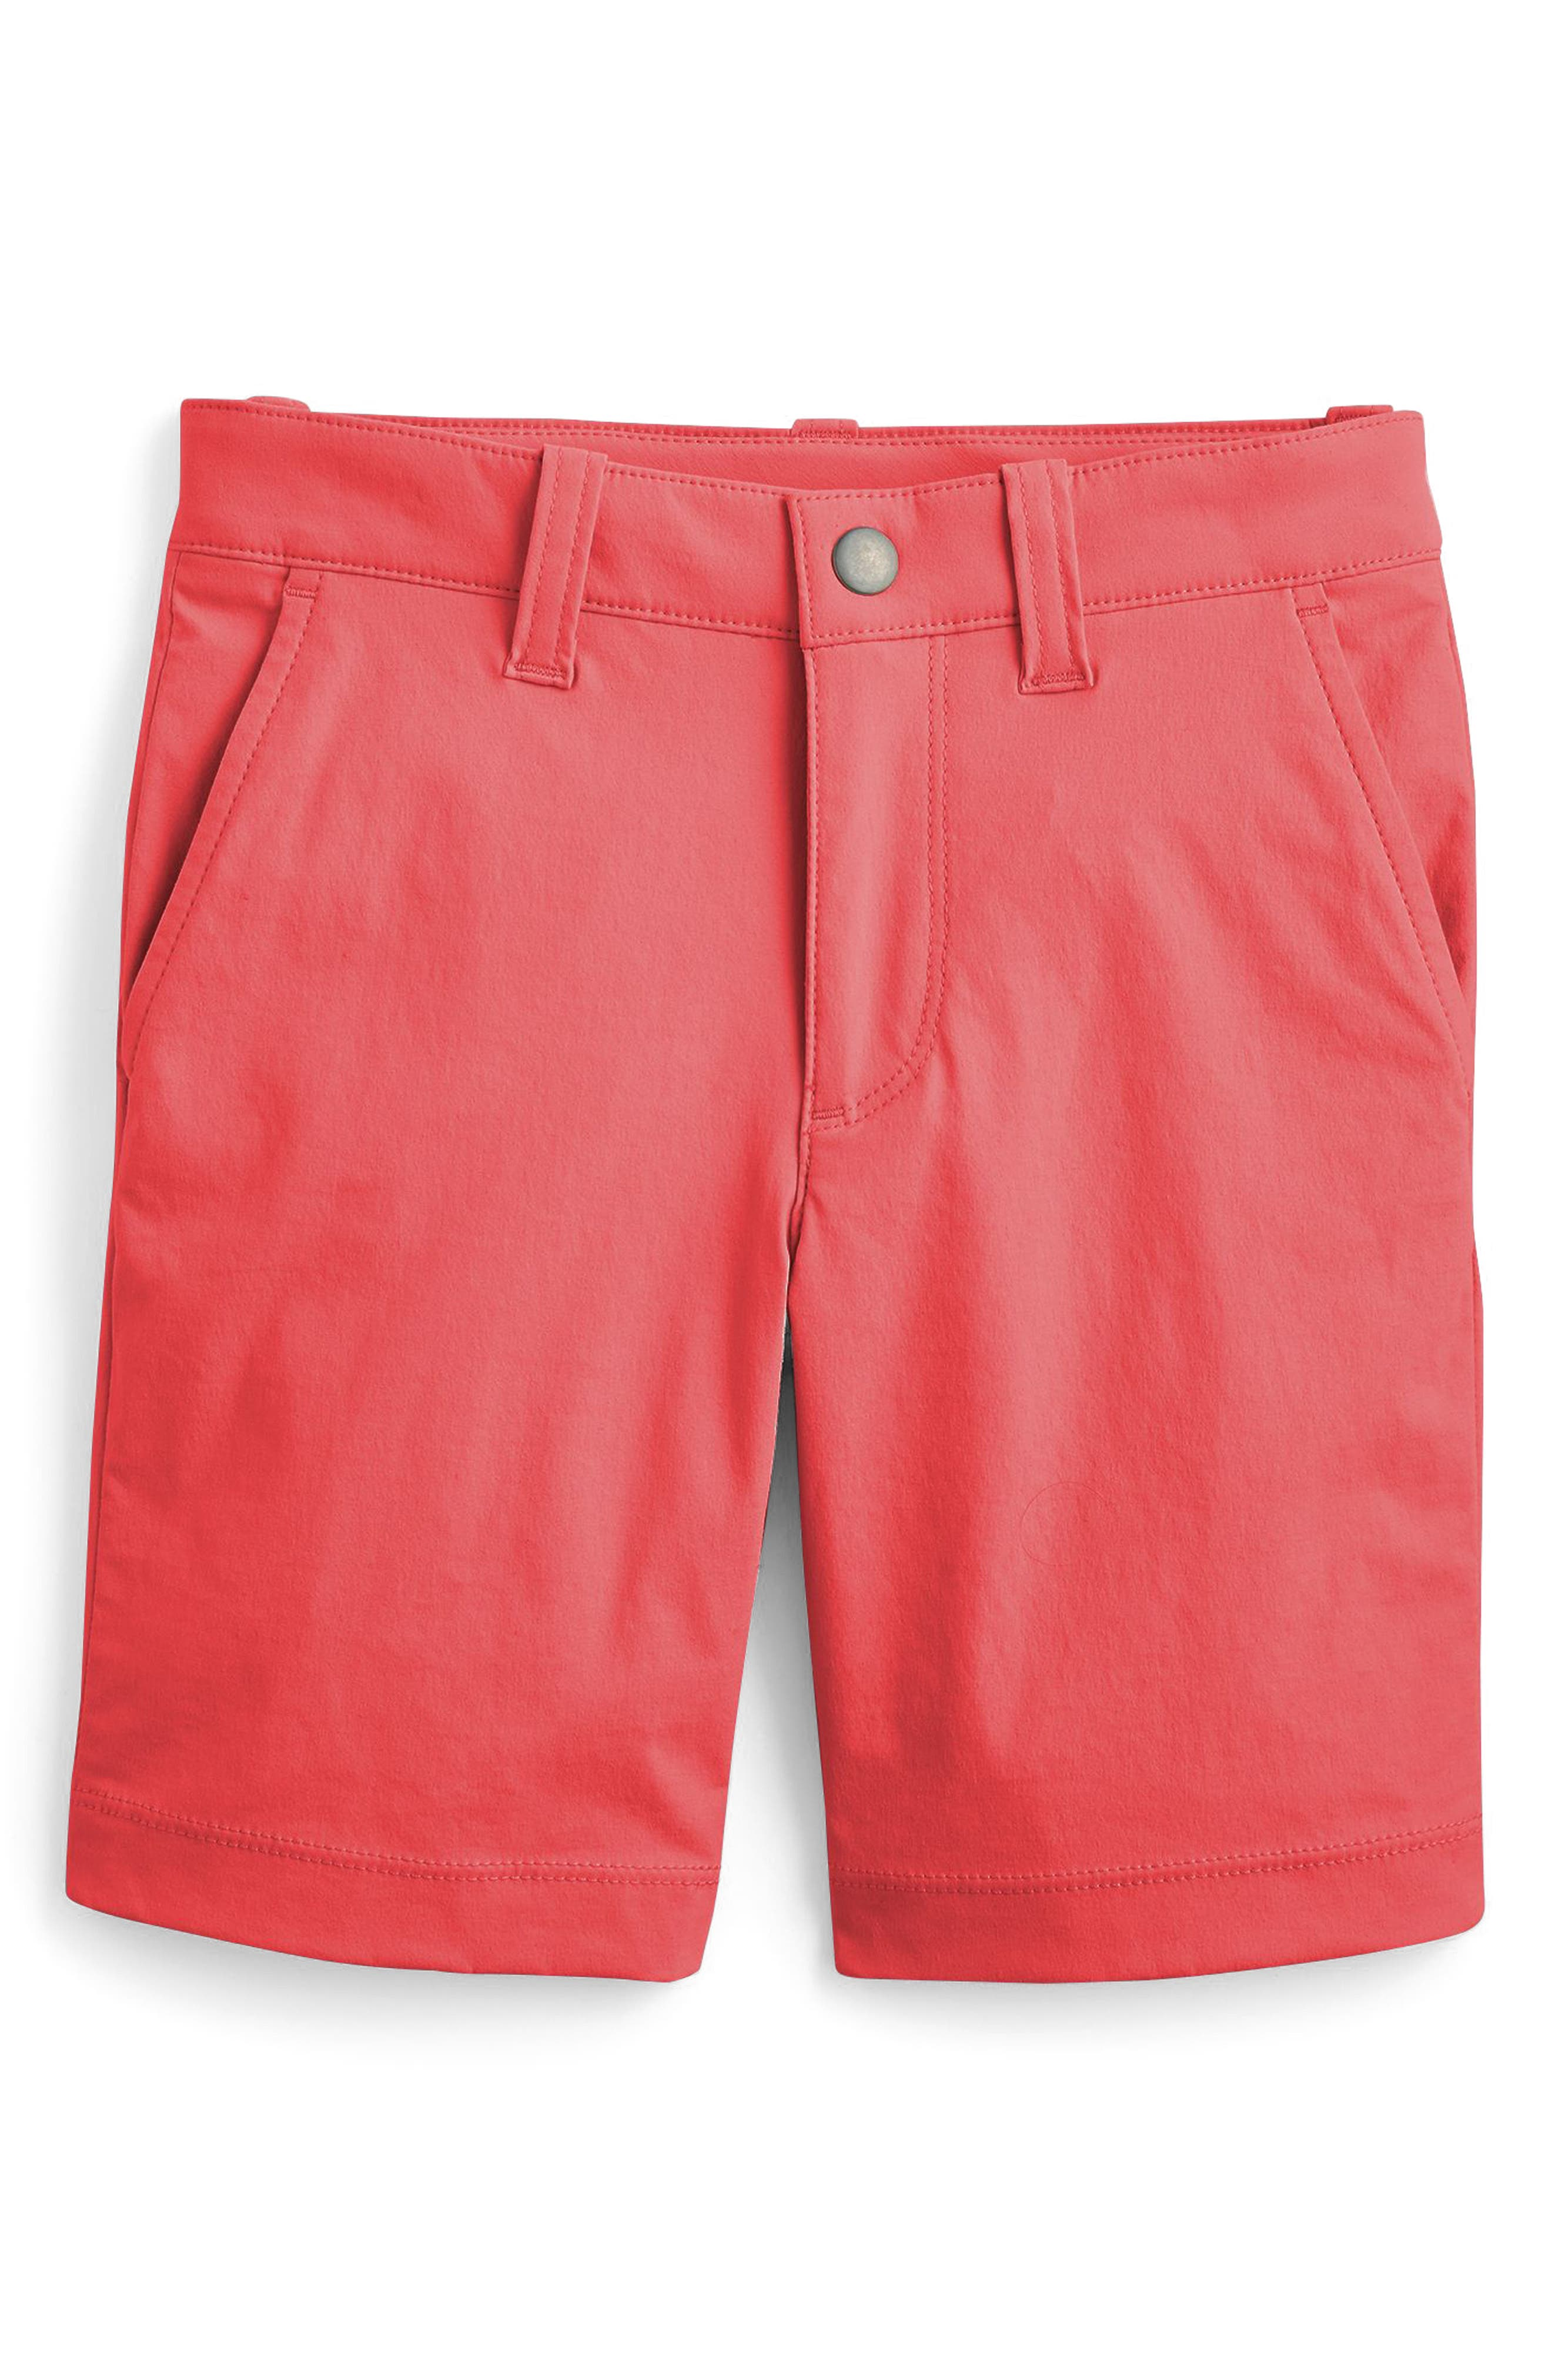 Tech Shorts,                         Main,                         color, Fiery Red